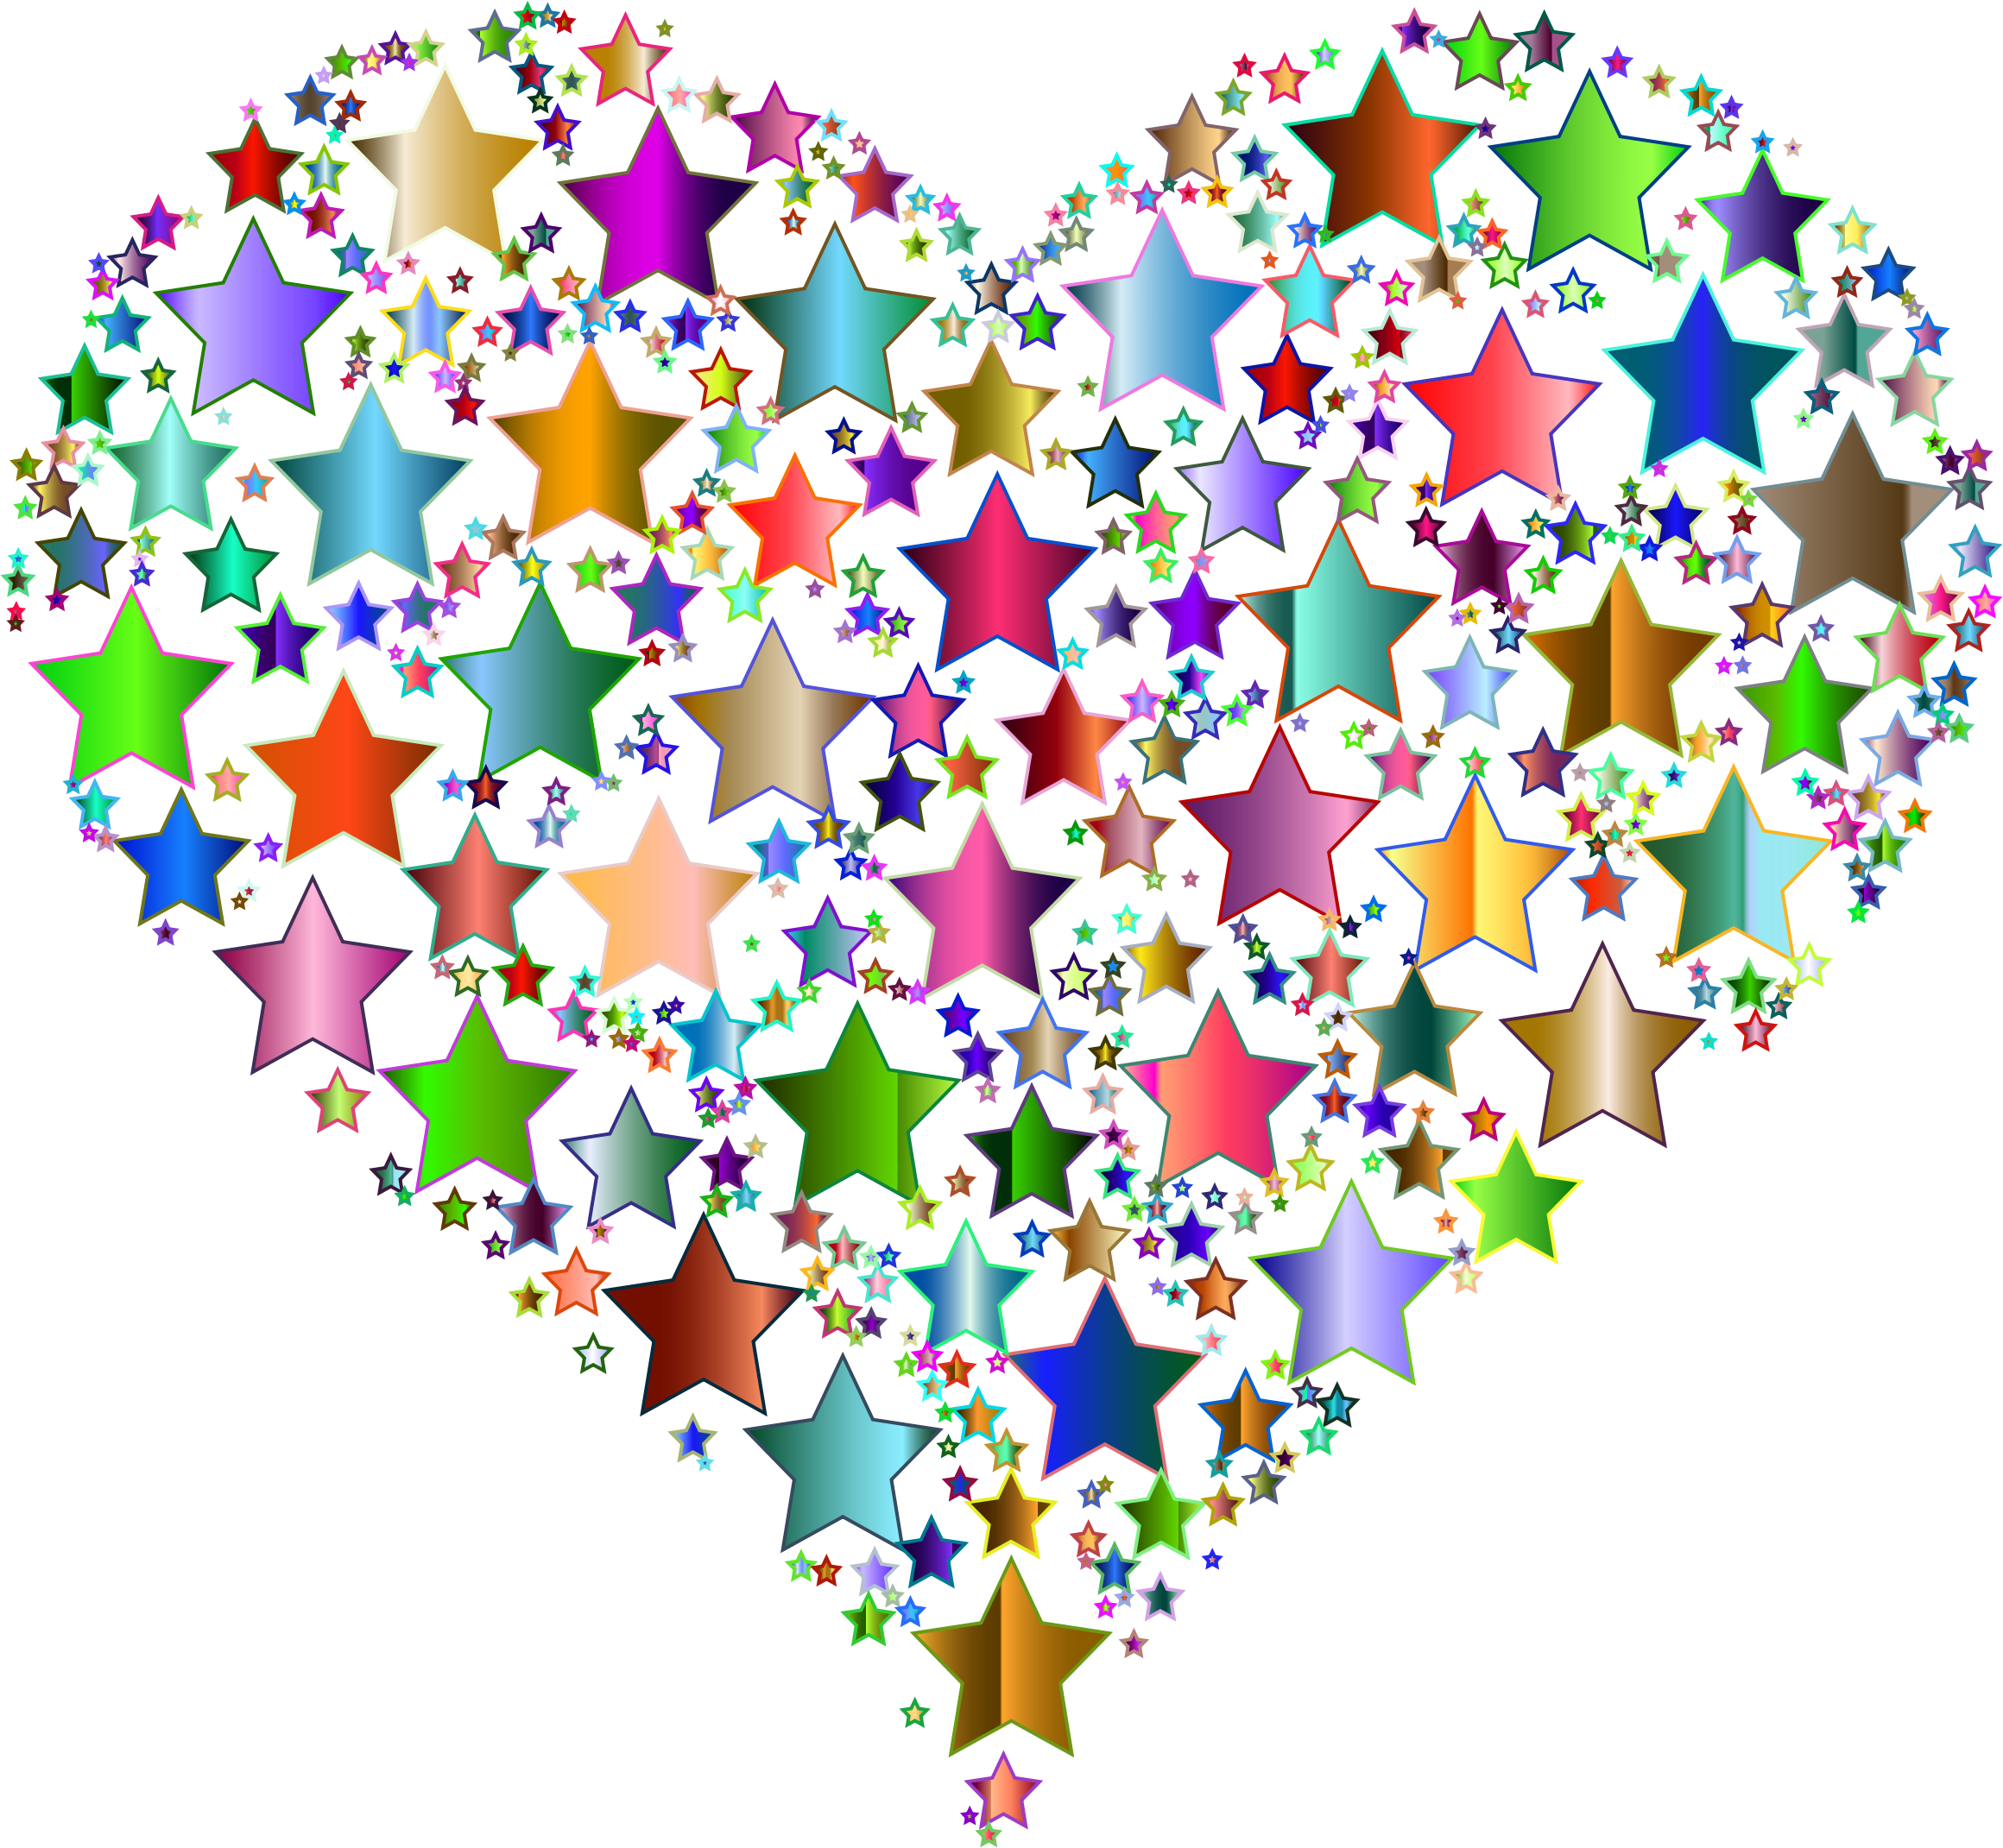 Colorful Heart Stars 9 No Background by GDJ